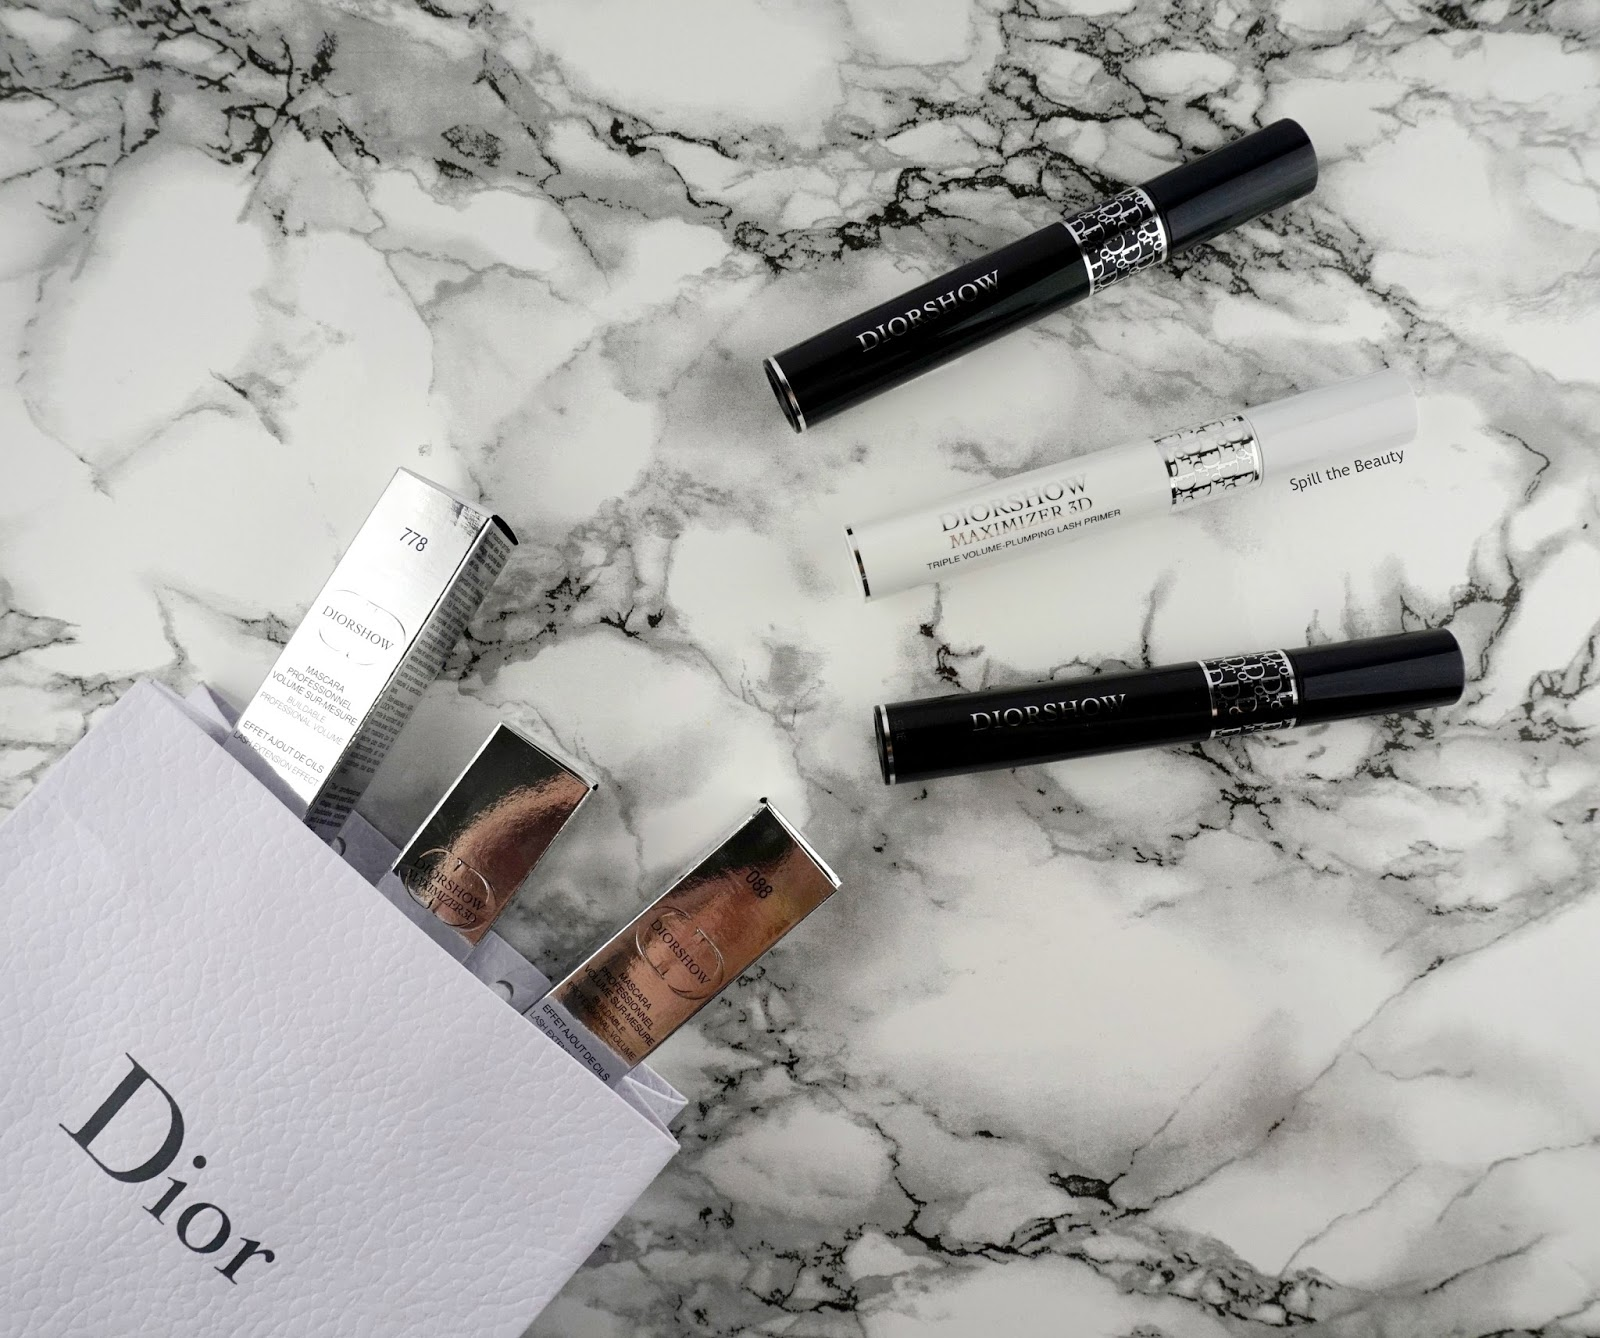 Dior Diorshow  'Maximizer 3D Triple Volume Plumping Lash Primer',  #778 'Pro Mahogany' and #082 'Pro Anthracite' Mascara – Review and Comparison